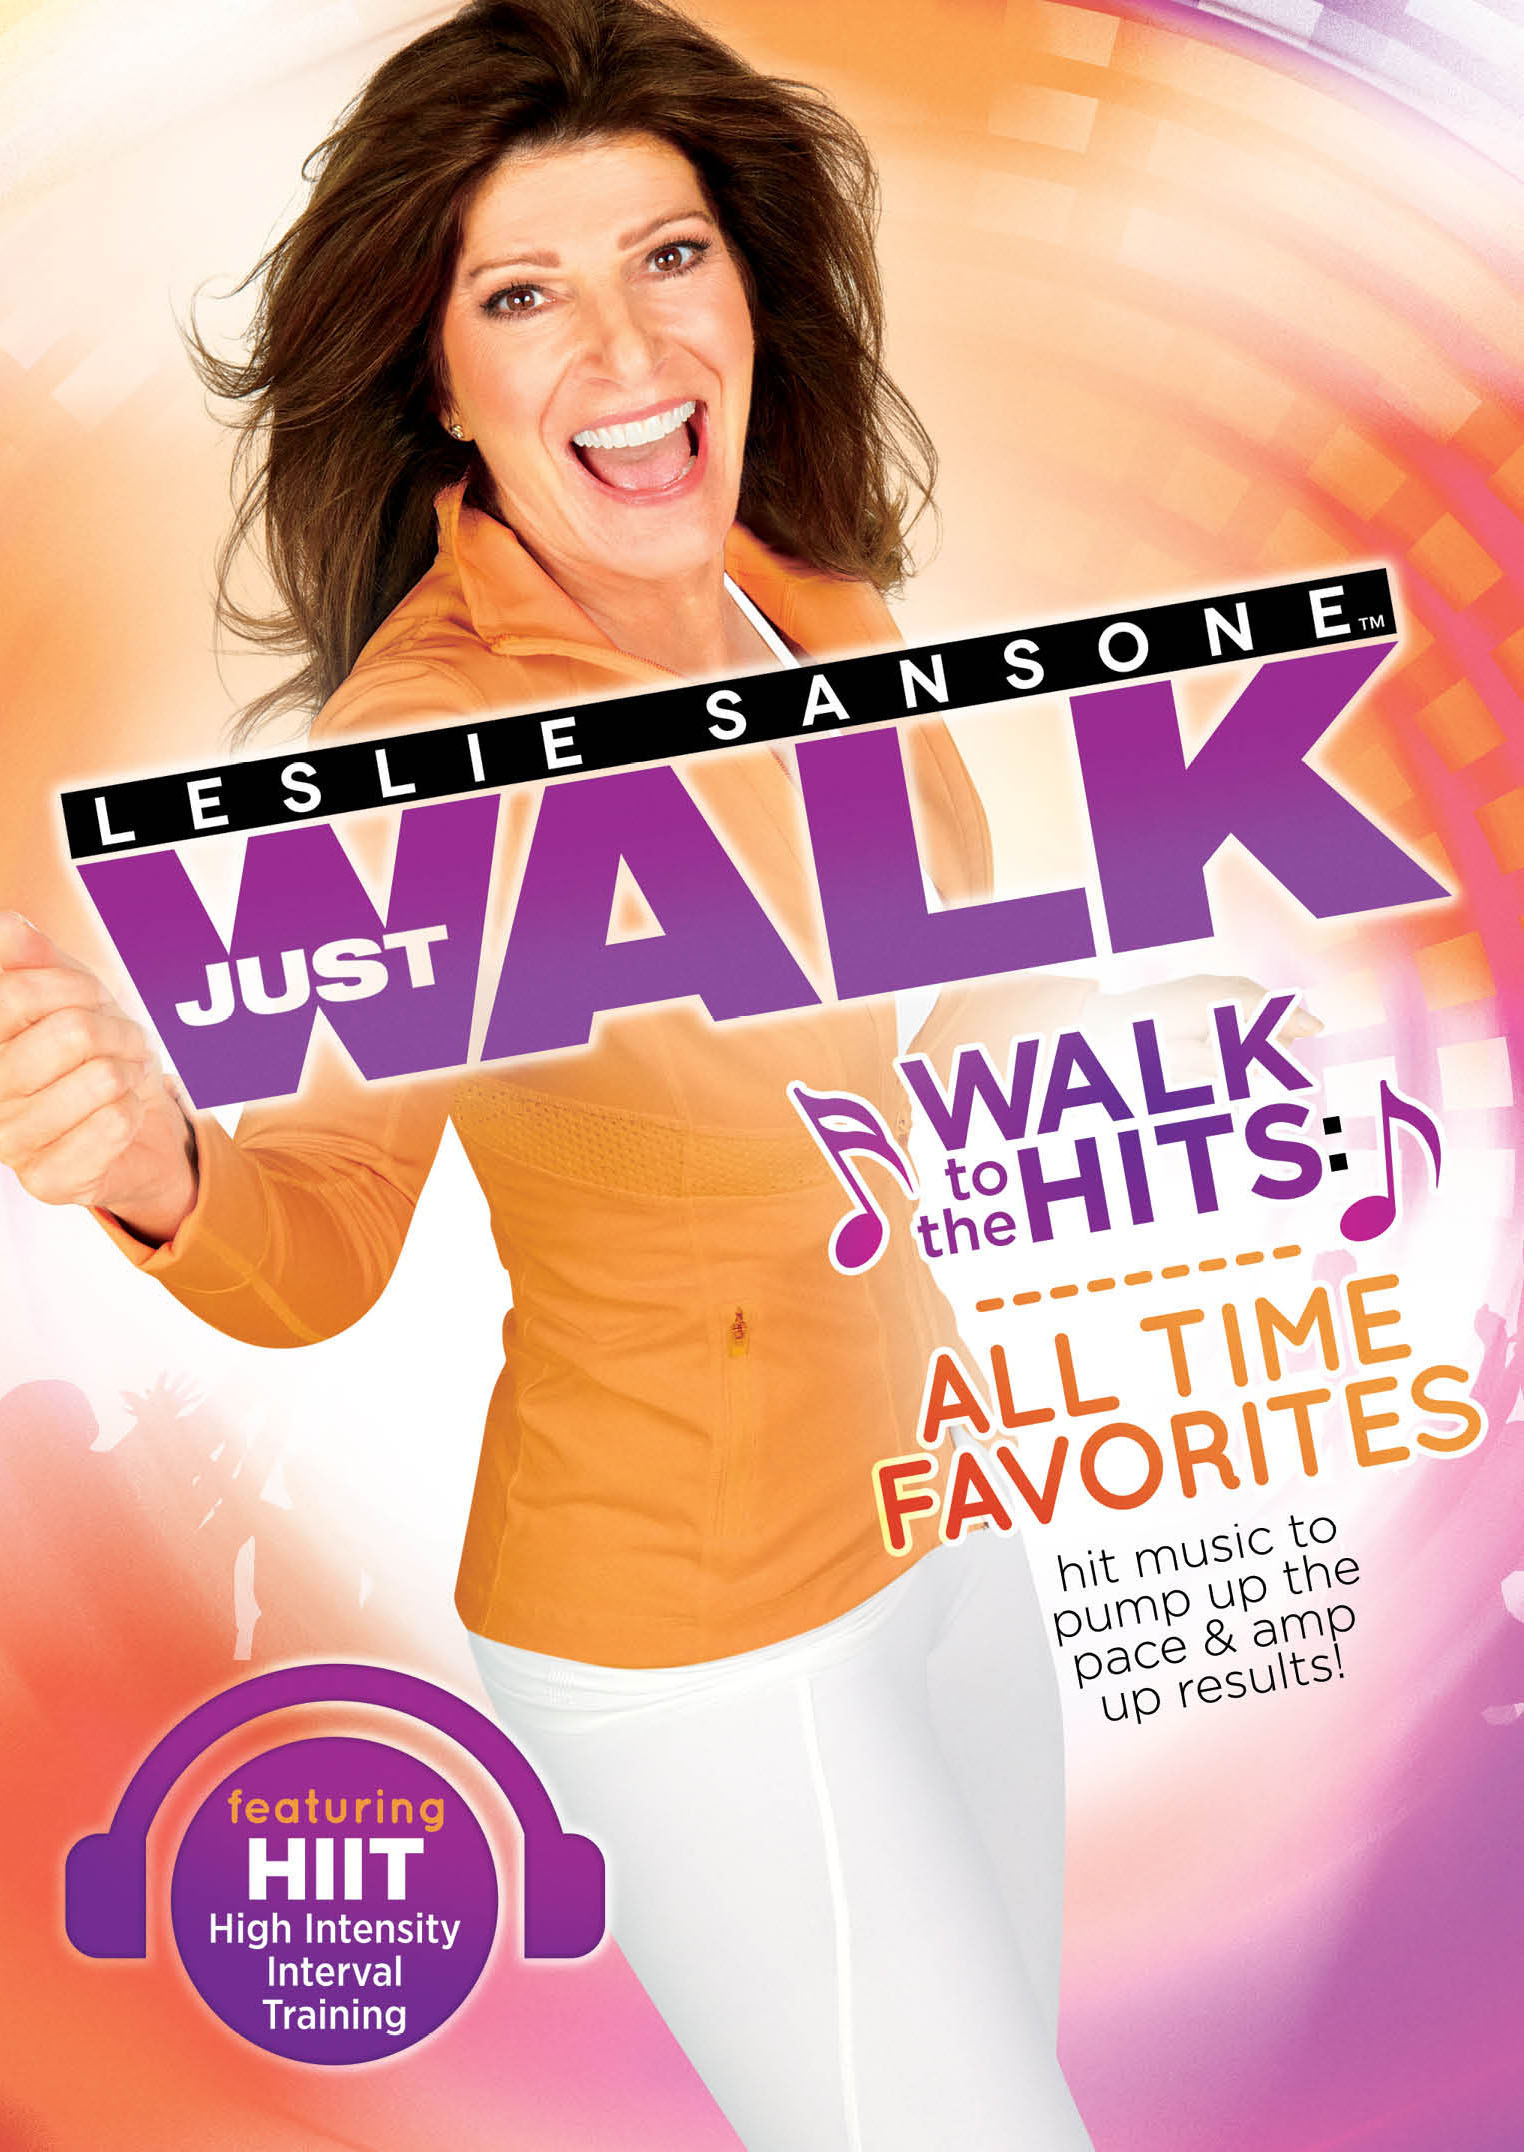 Leslie Sansone: Just Walk - Walk to the Hits - All Time Favorites